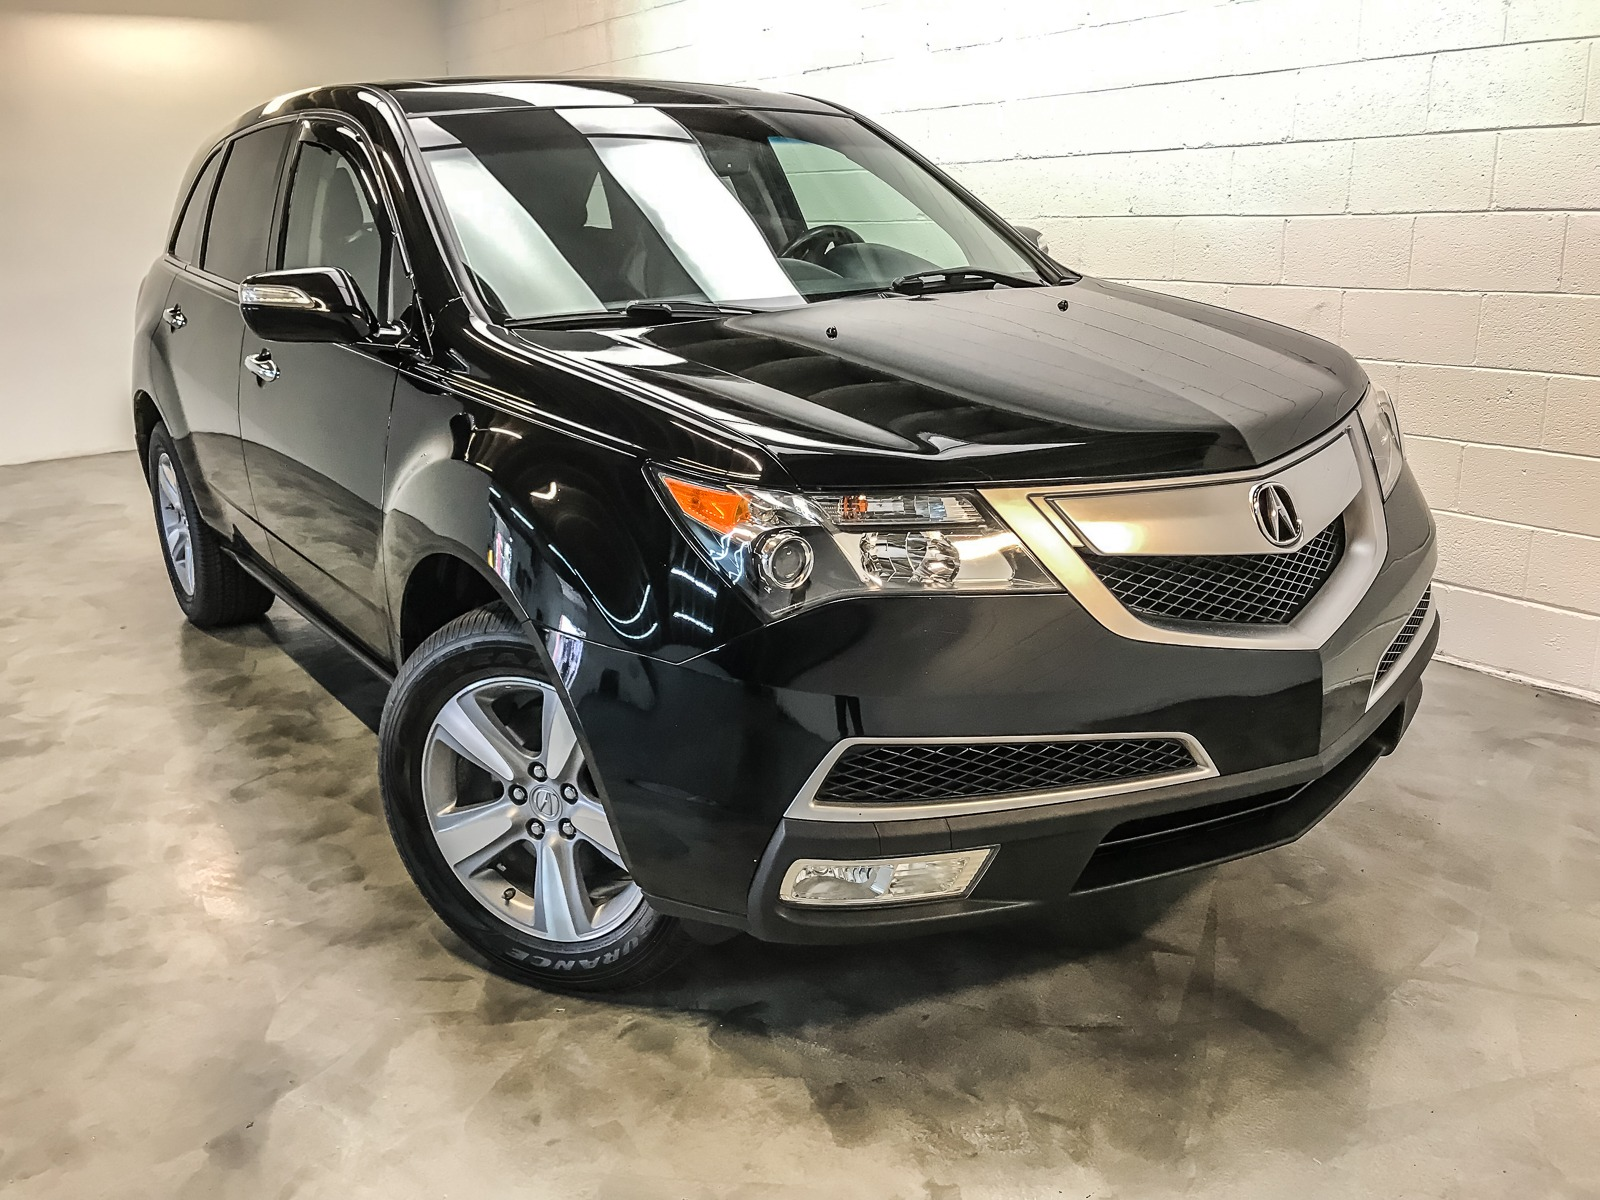 Used 2012 Acura Mdx Technology For Sale 19 991 Inetwork Auto Group Stock P548835